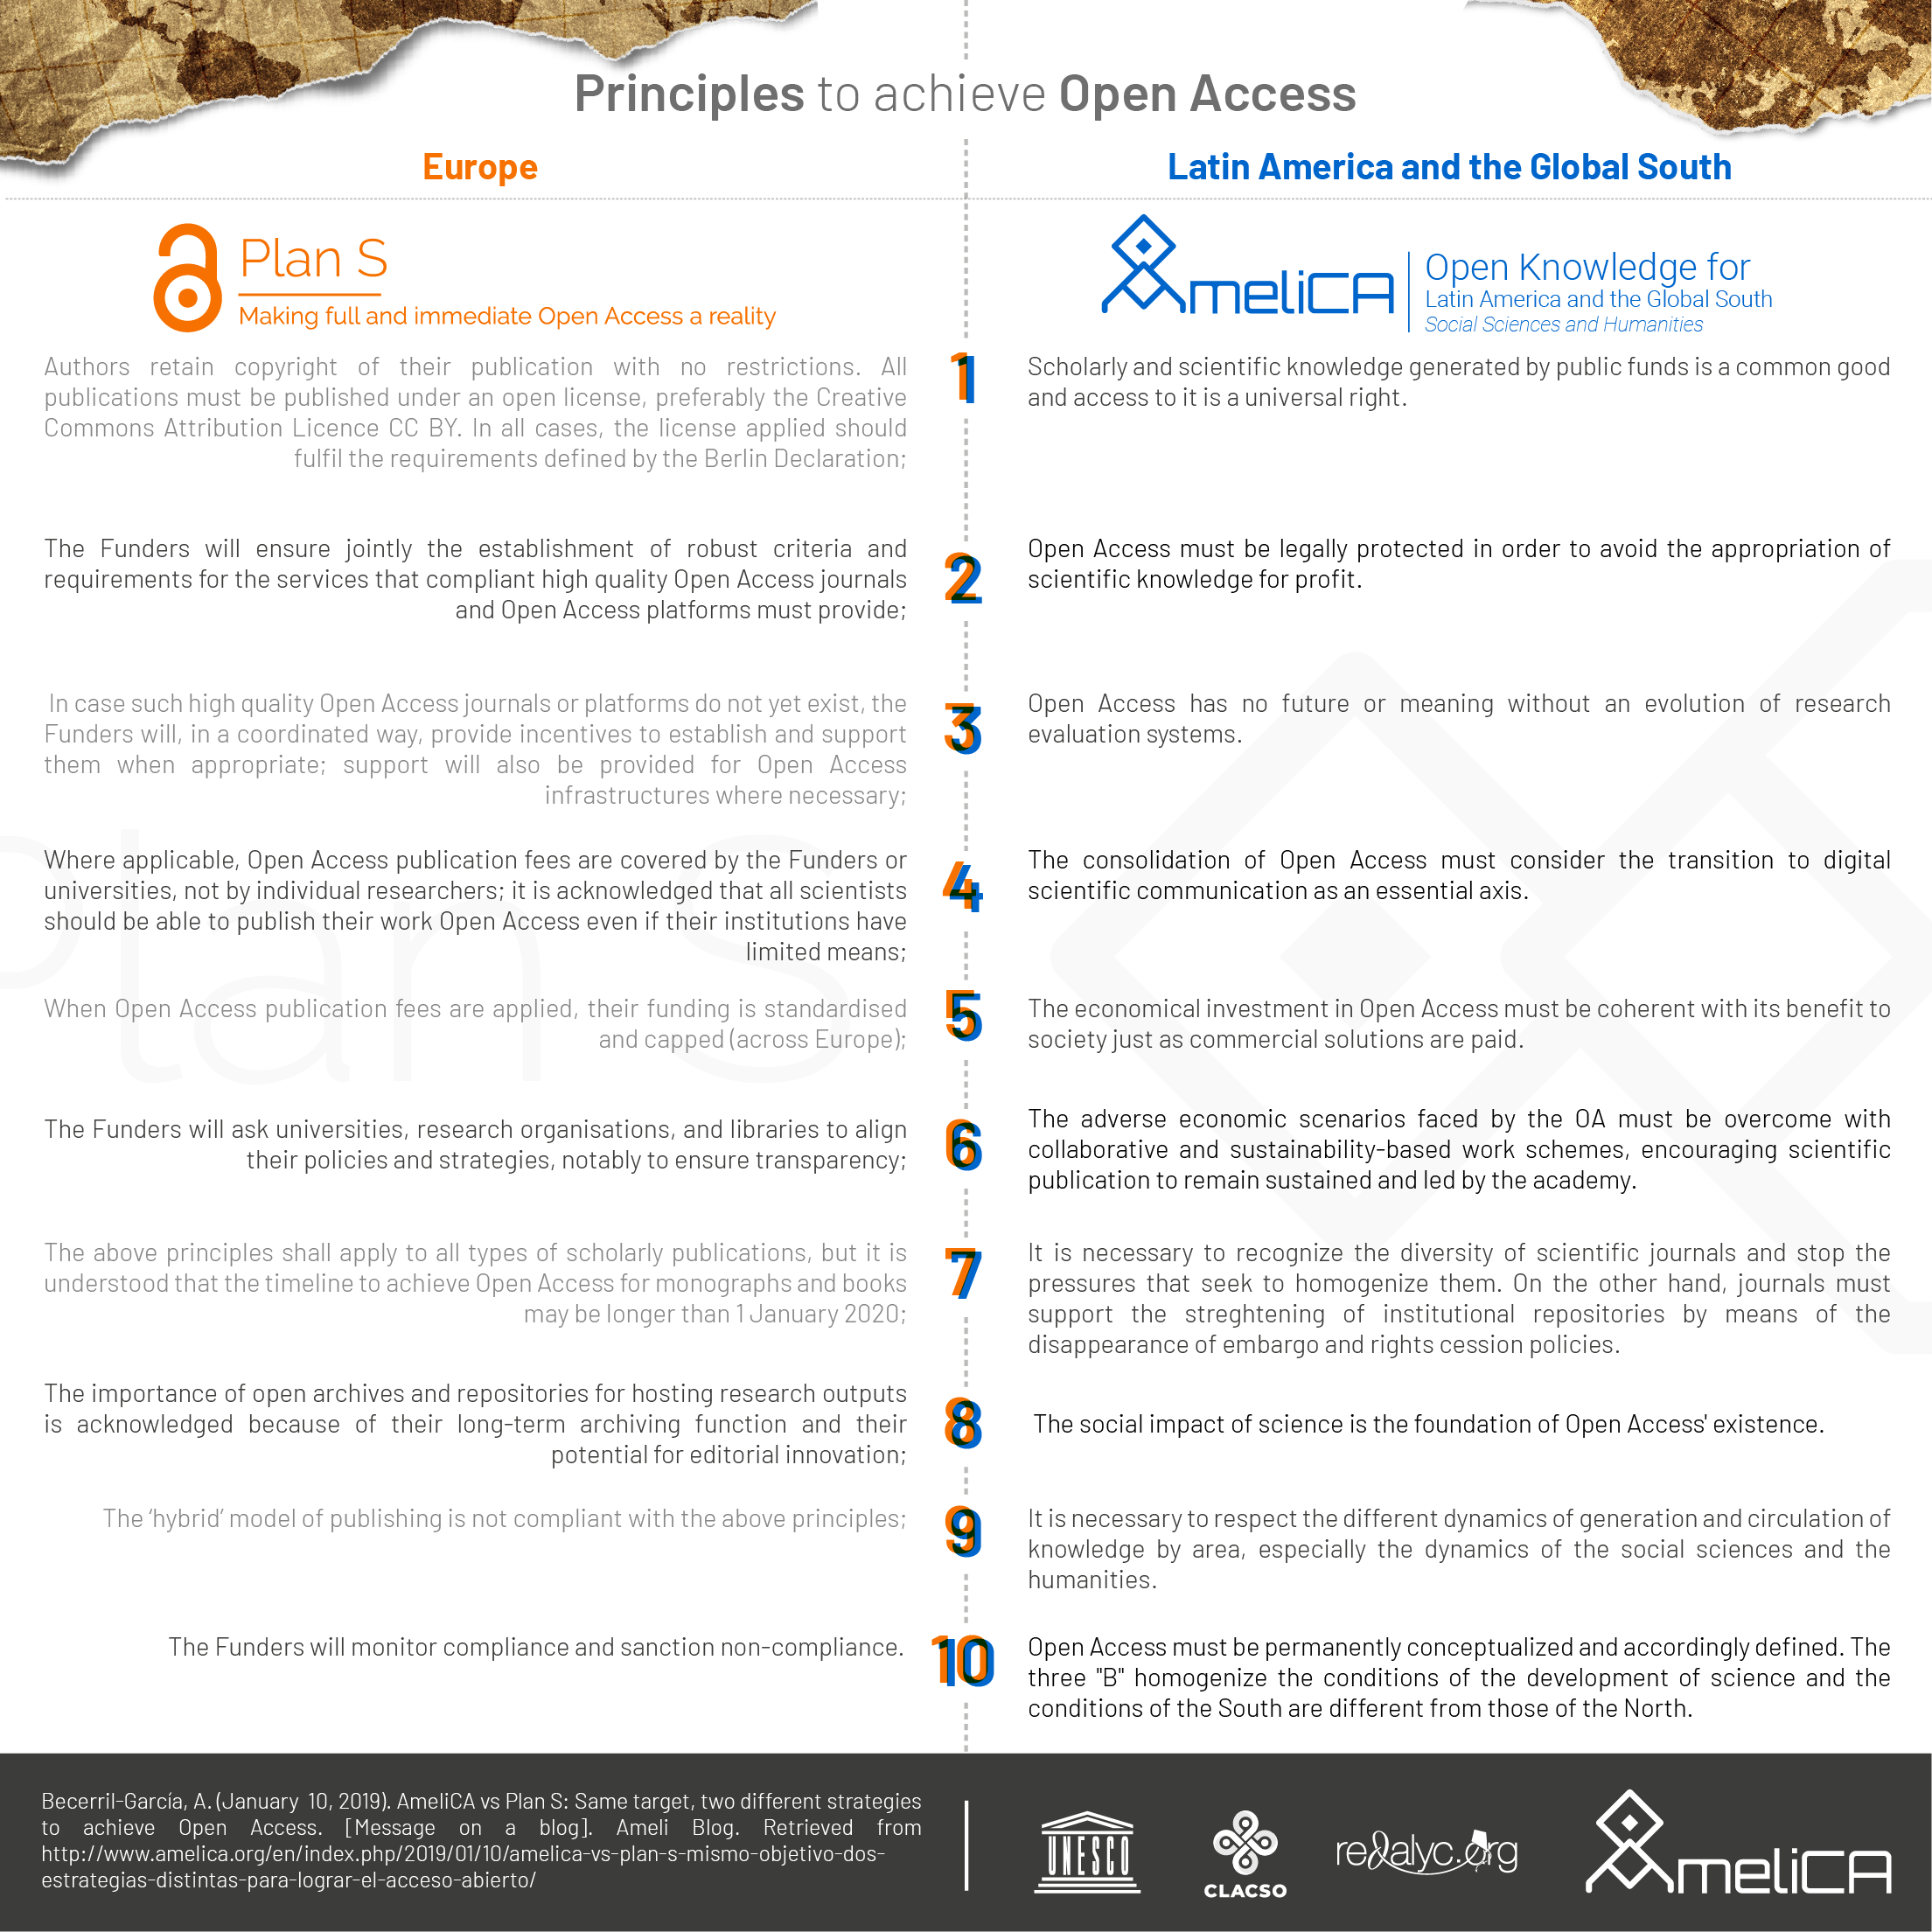 http://www.amelica.org/wp-content/uploads/2019/04/principles-Amelica-PlanS-eng.png